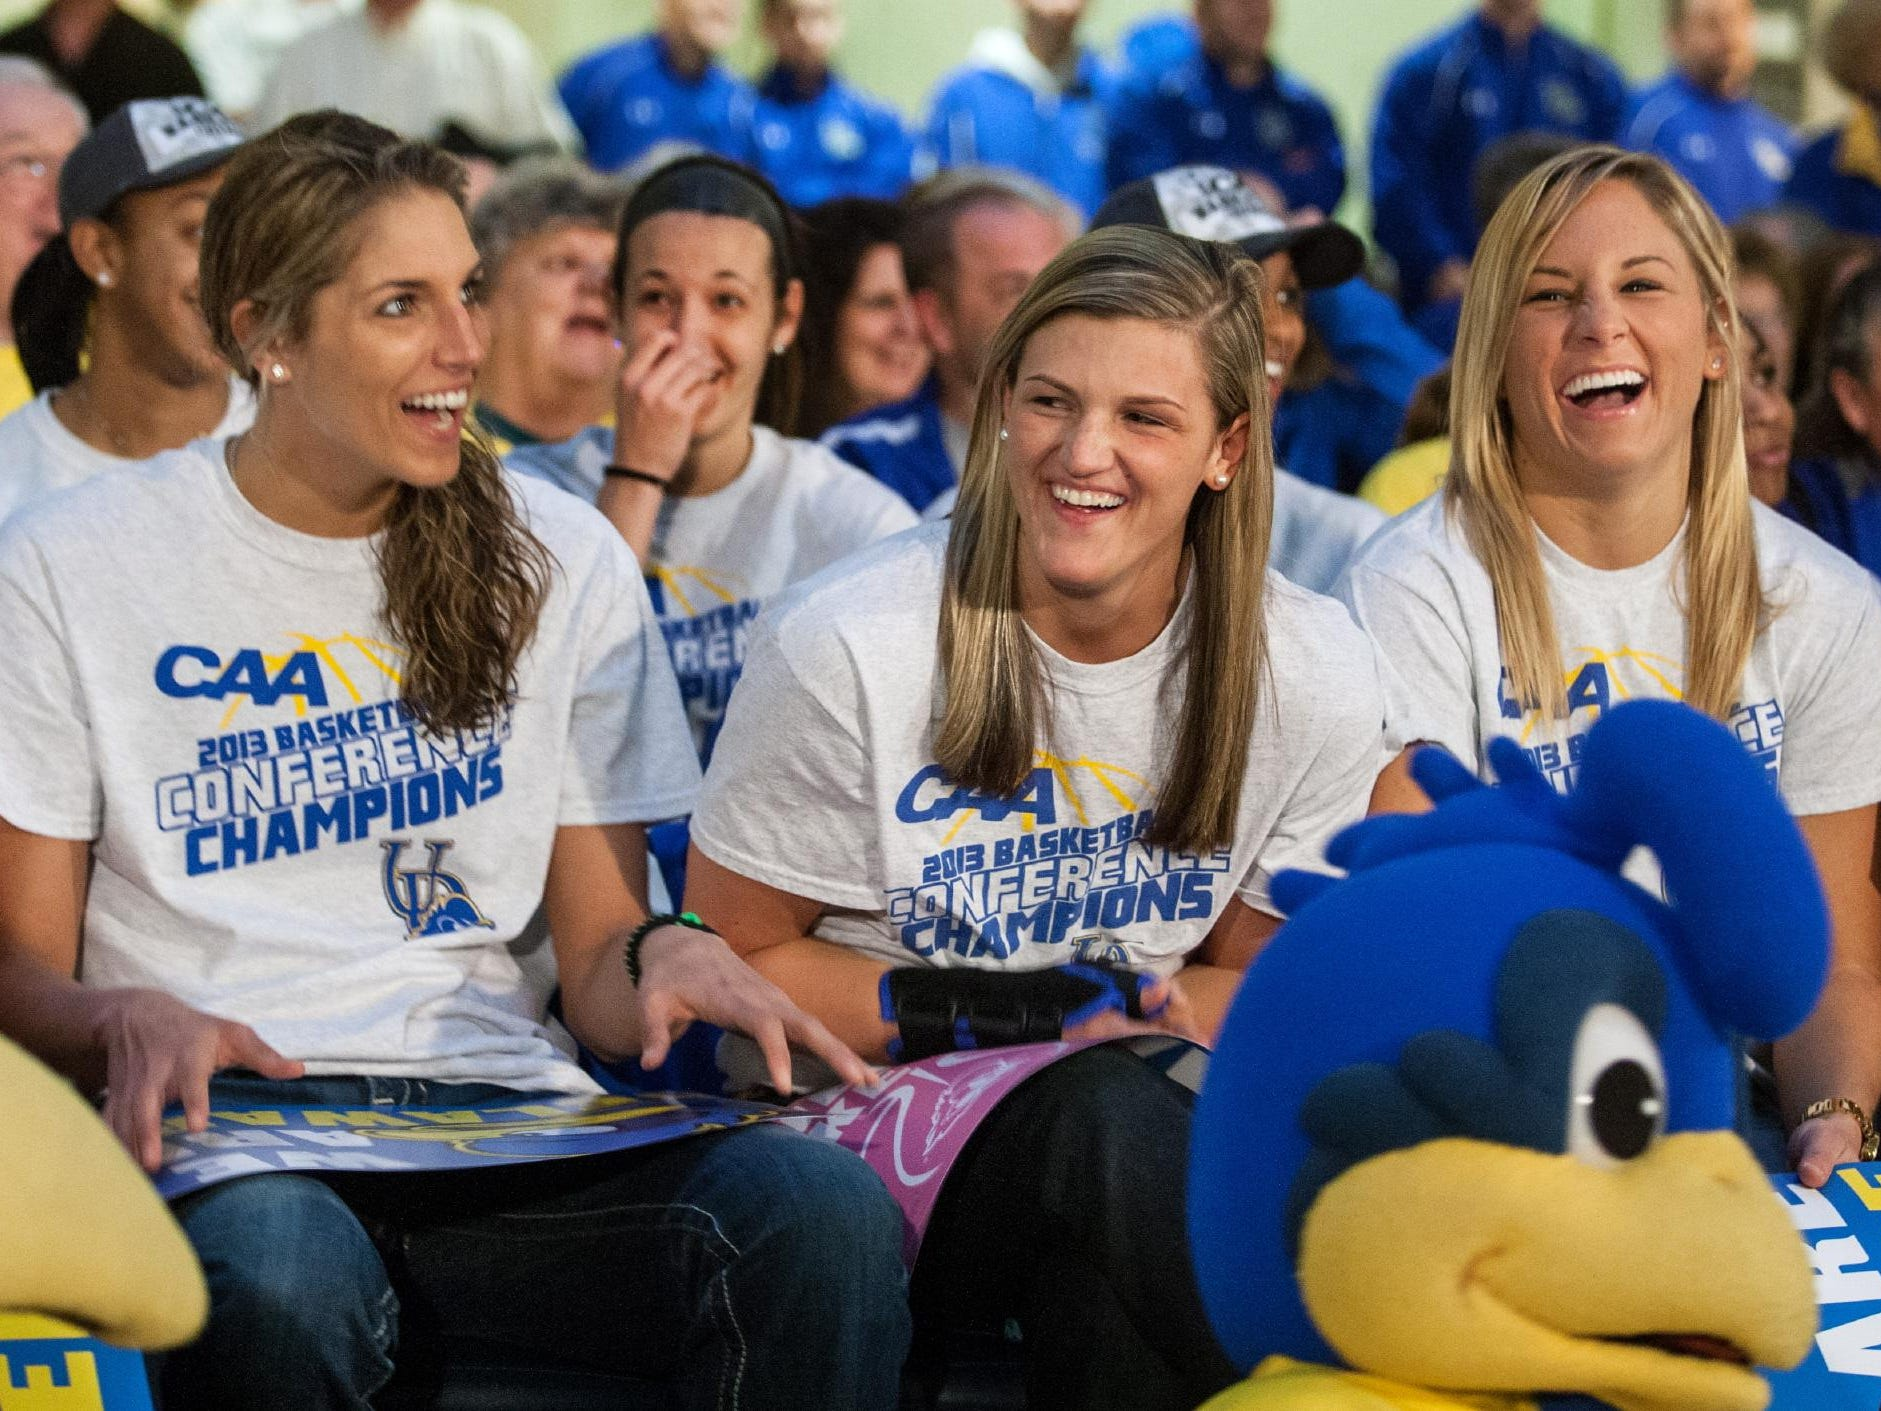 Delaware's Elena Delle Donne, left, and Lauren Carra, center, and Kayla Miller, right, share a laugh as they watch a season highlight video at an NCAA Tournament selection show party for the team at the Embassy Suites hotel in Newark, Del. on Monday evening, March 18, 2013.KYLE GRANTHAM/THE NEWS JOURNAL